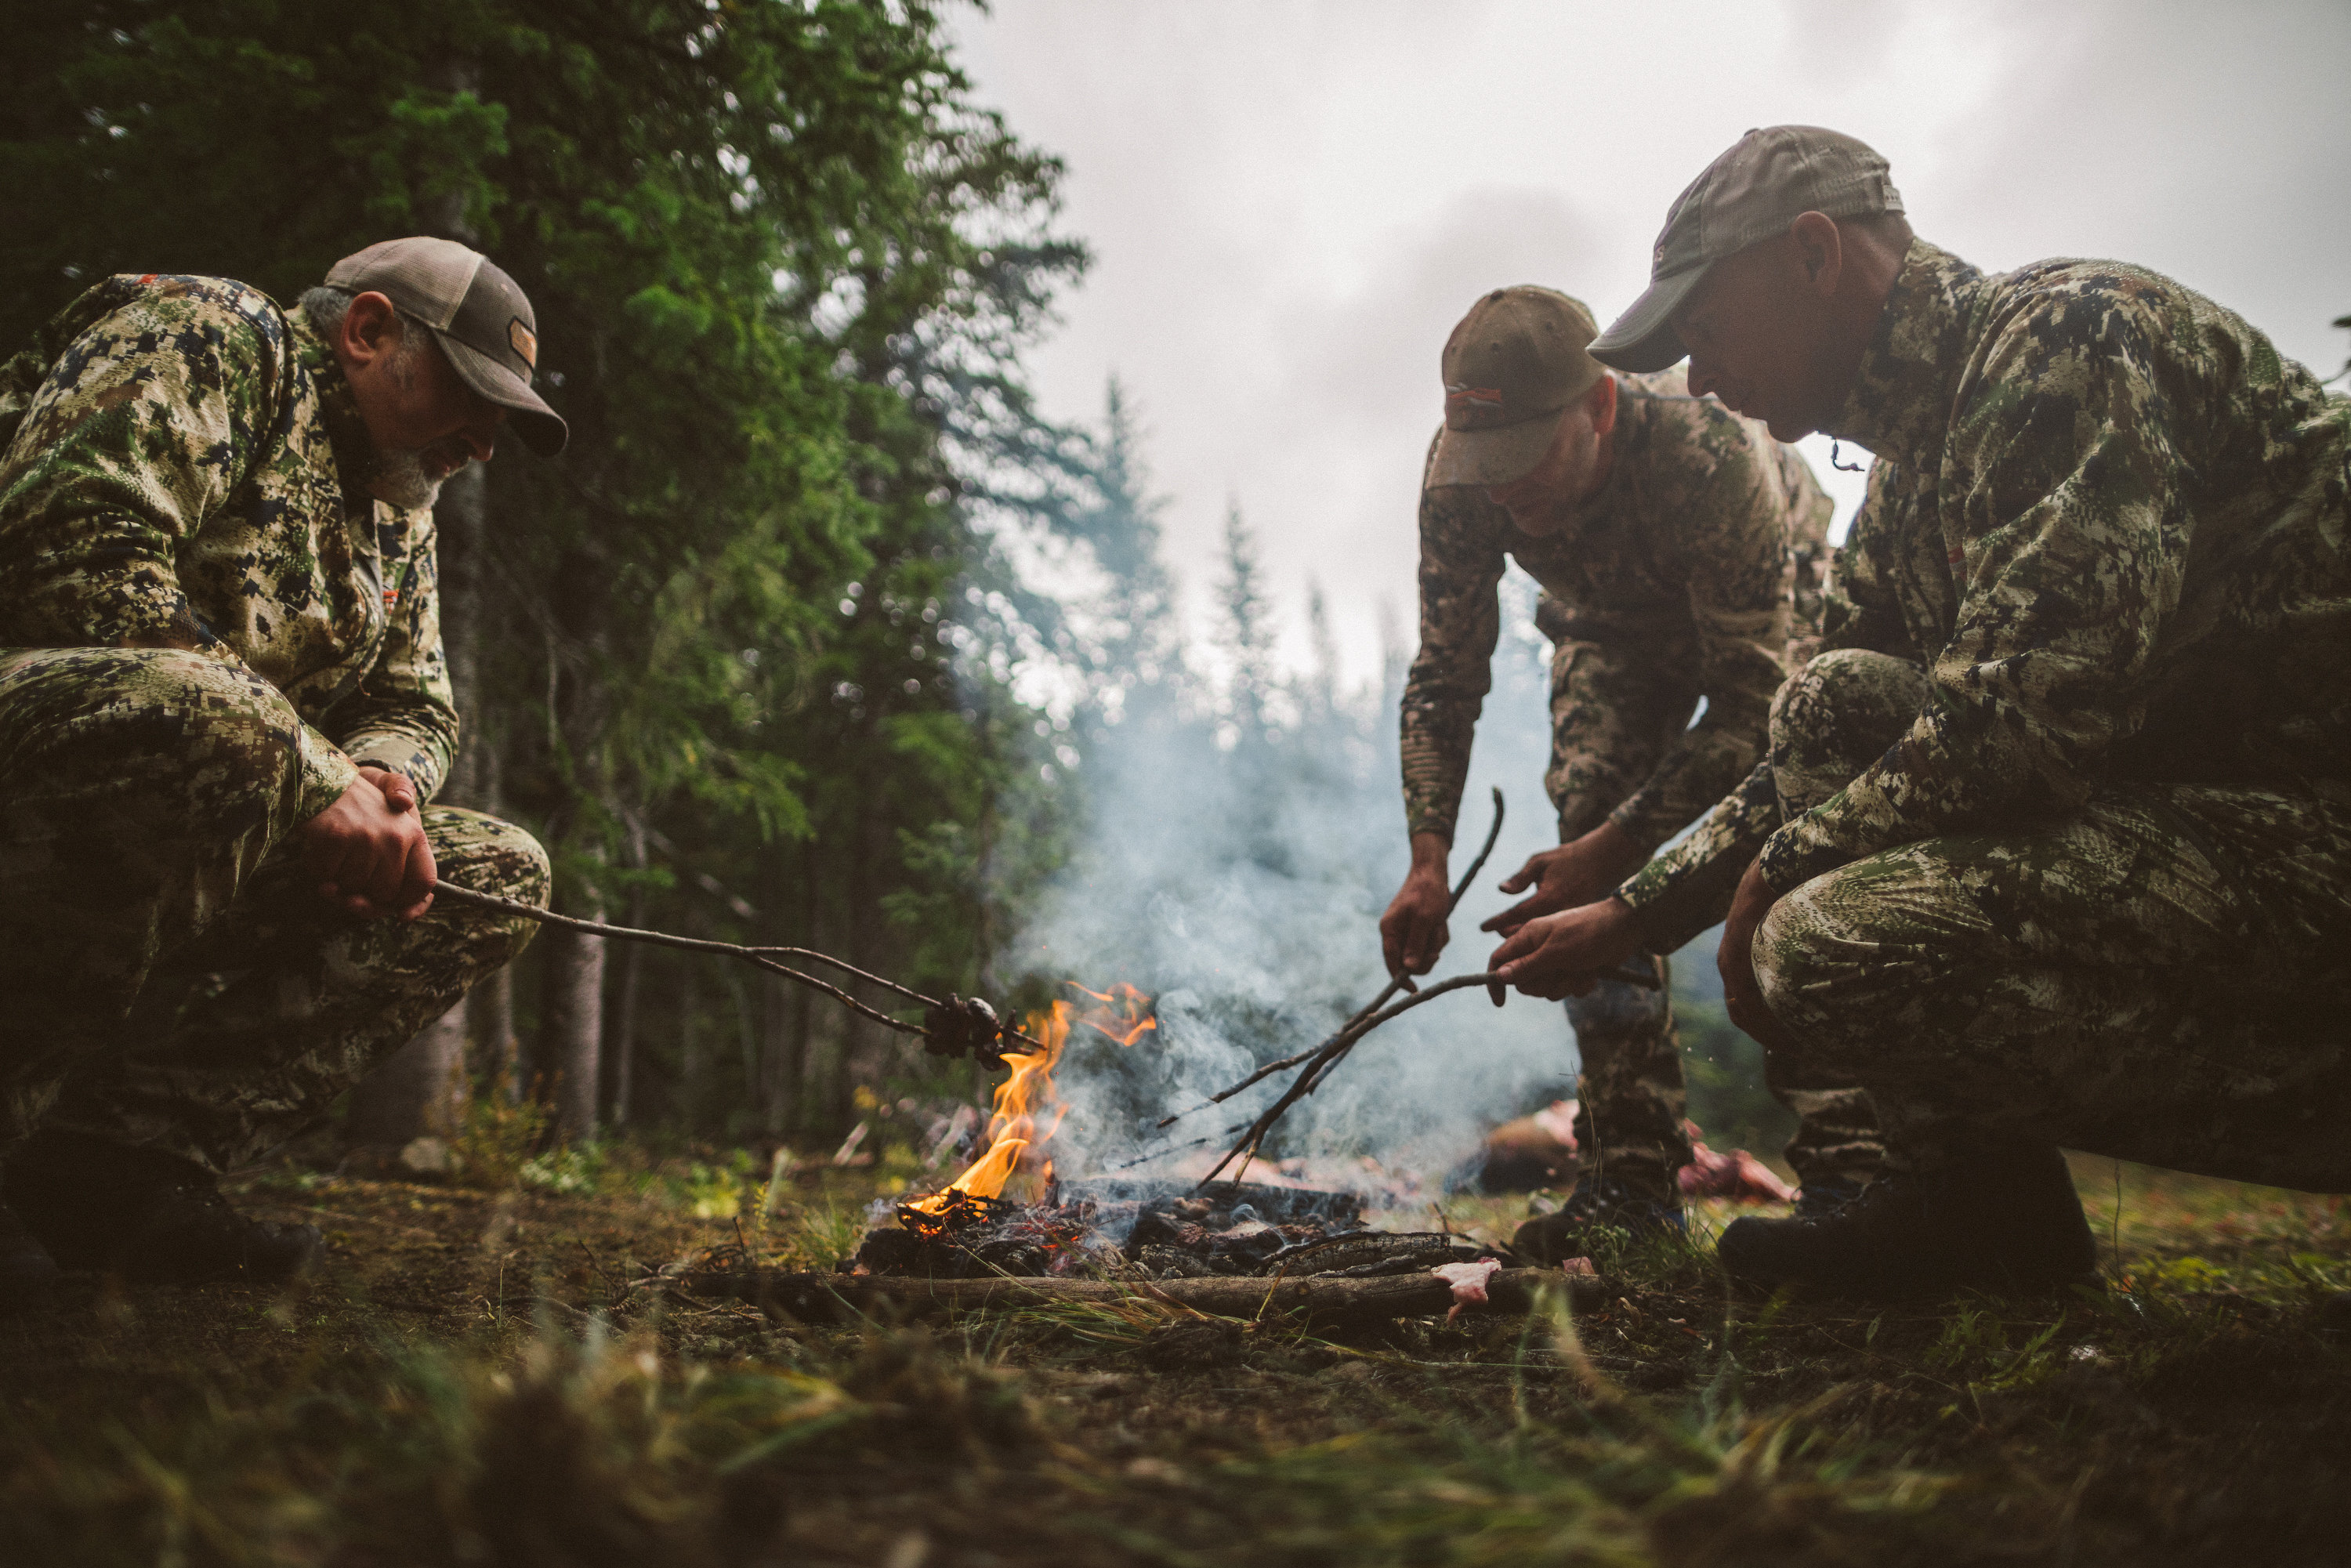 Hunters cook their harvest over an open fire.